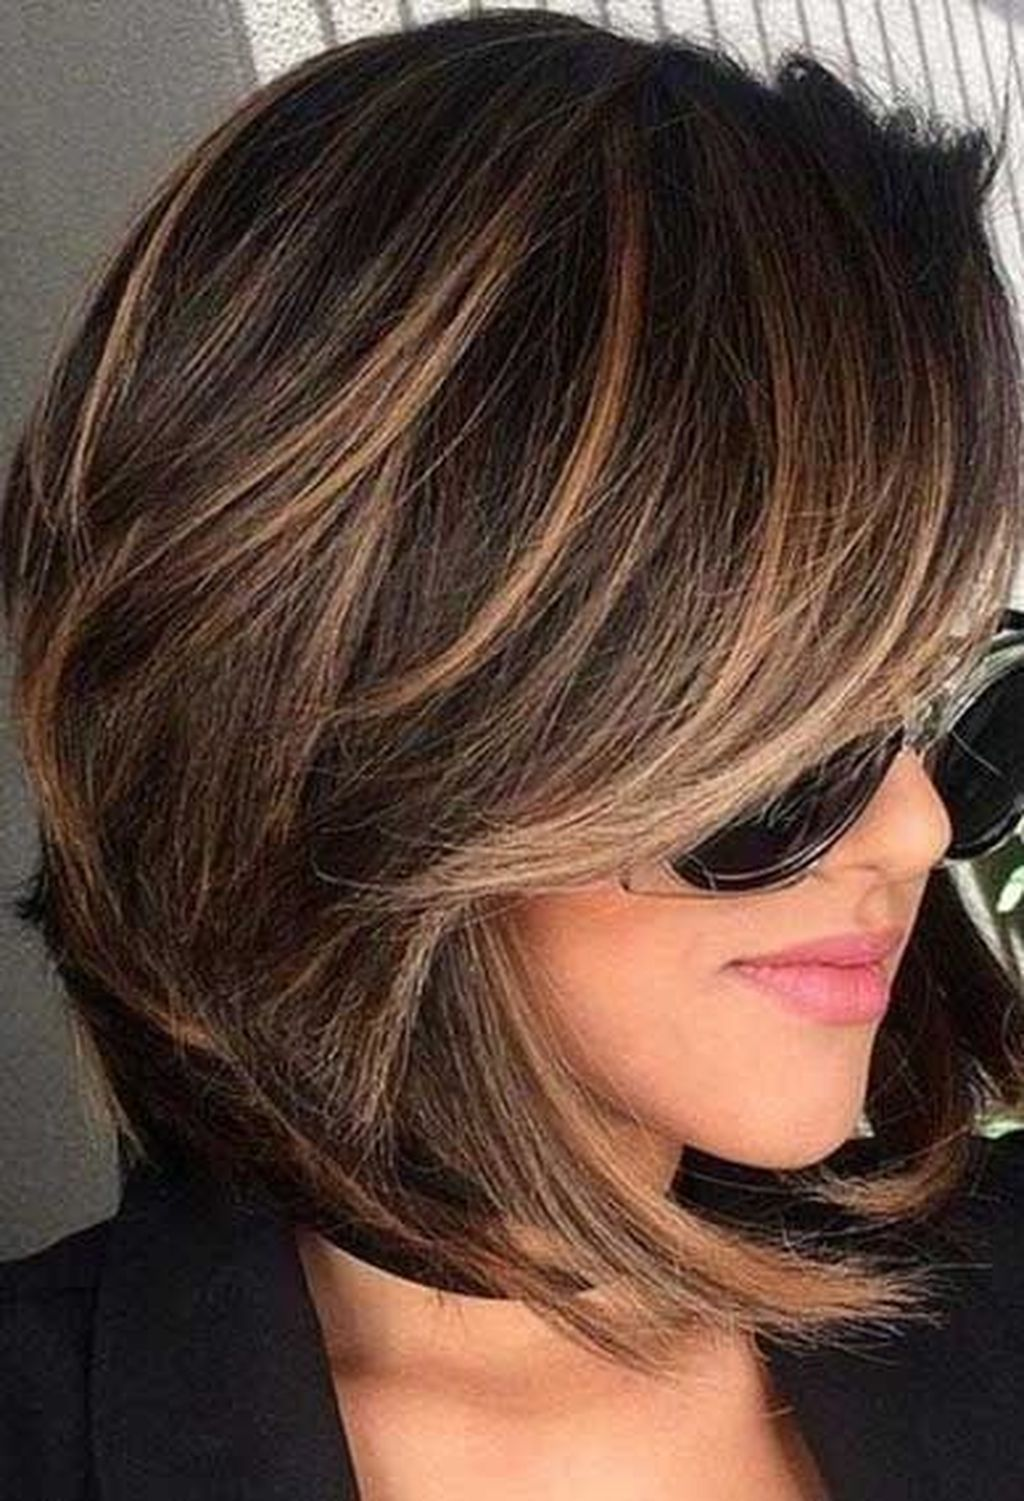 Awesome 48 Lovely Chocoloate Brown Hair Color Ideas Brown Hair With Highlights Hair Inspiration Color Chocolate Brown Hair Color